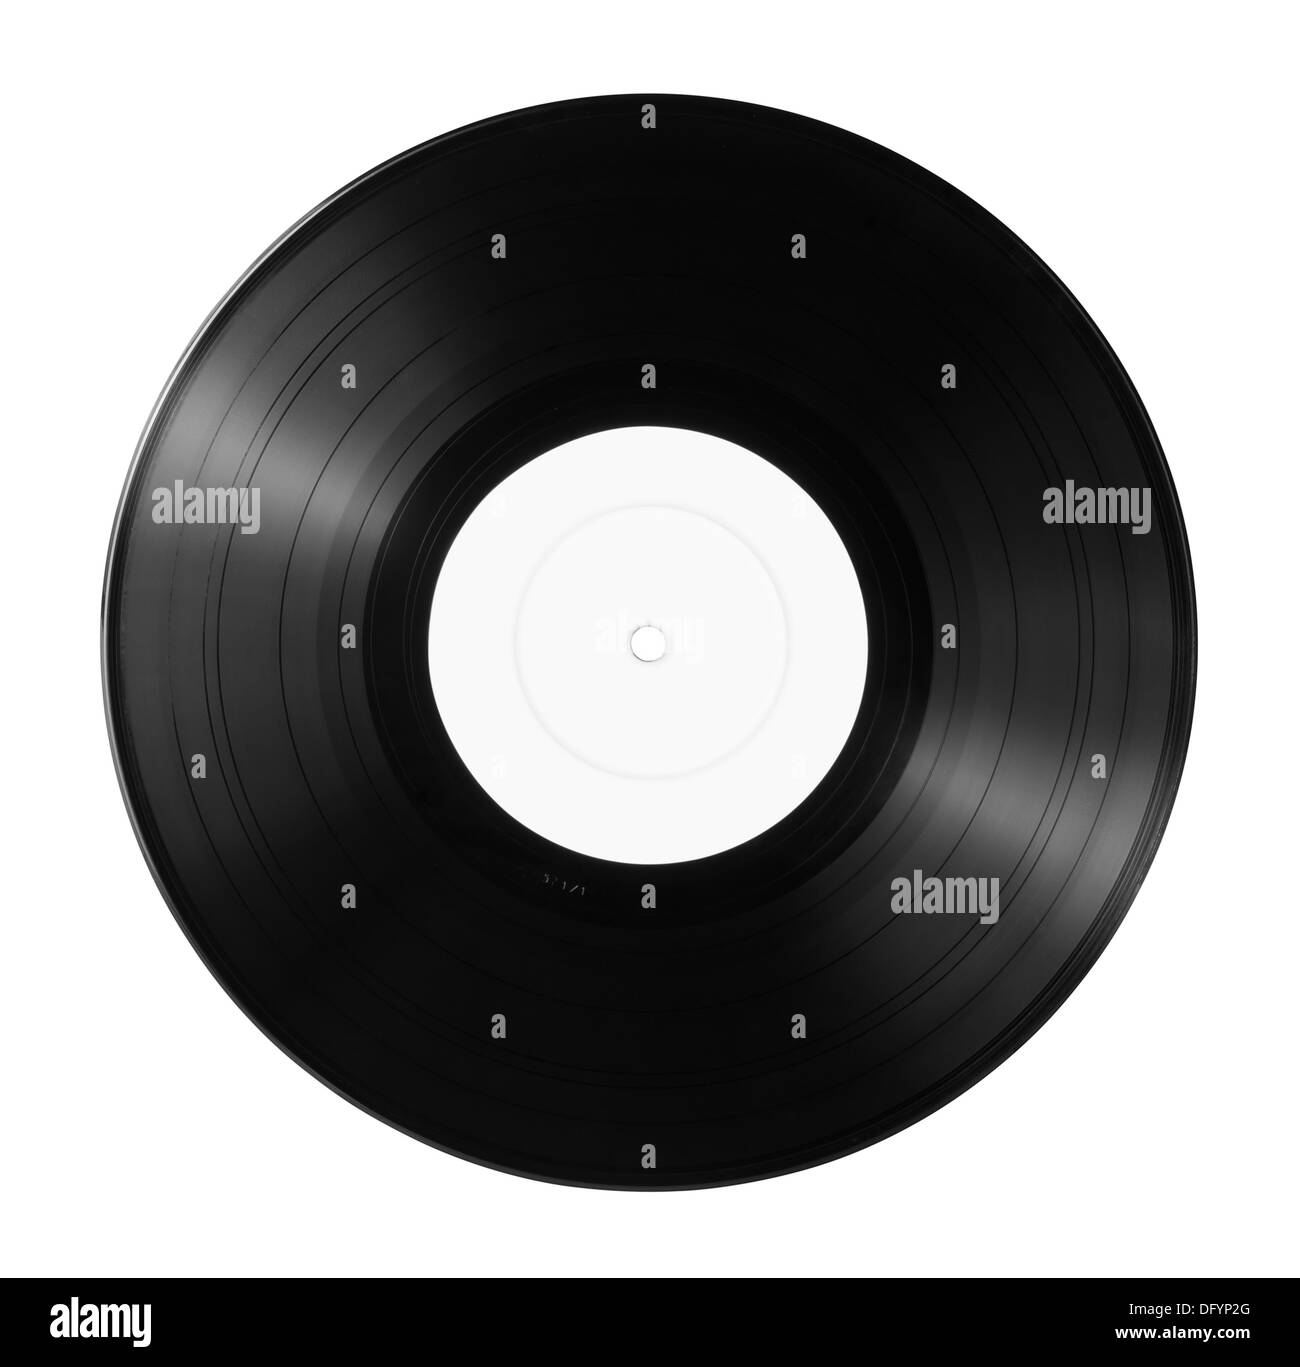 New vinyl record with empty label isolated on white - Stock Image